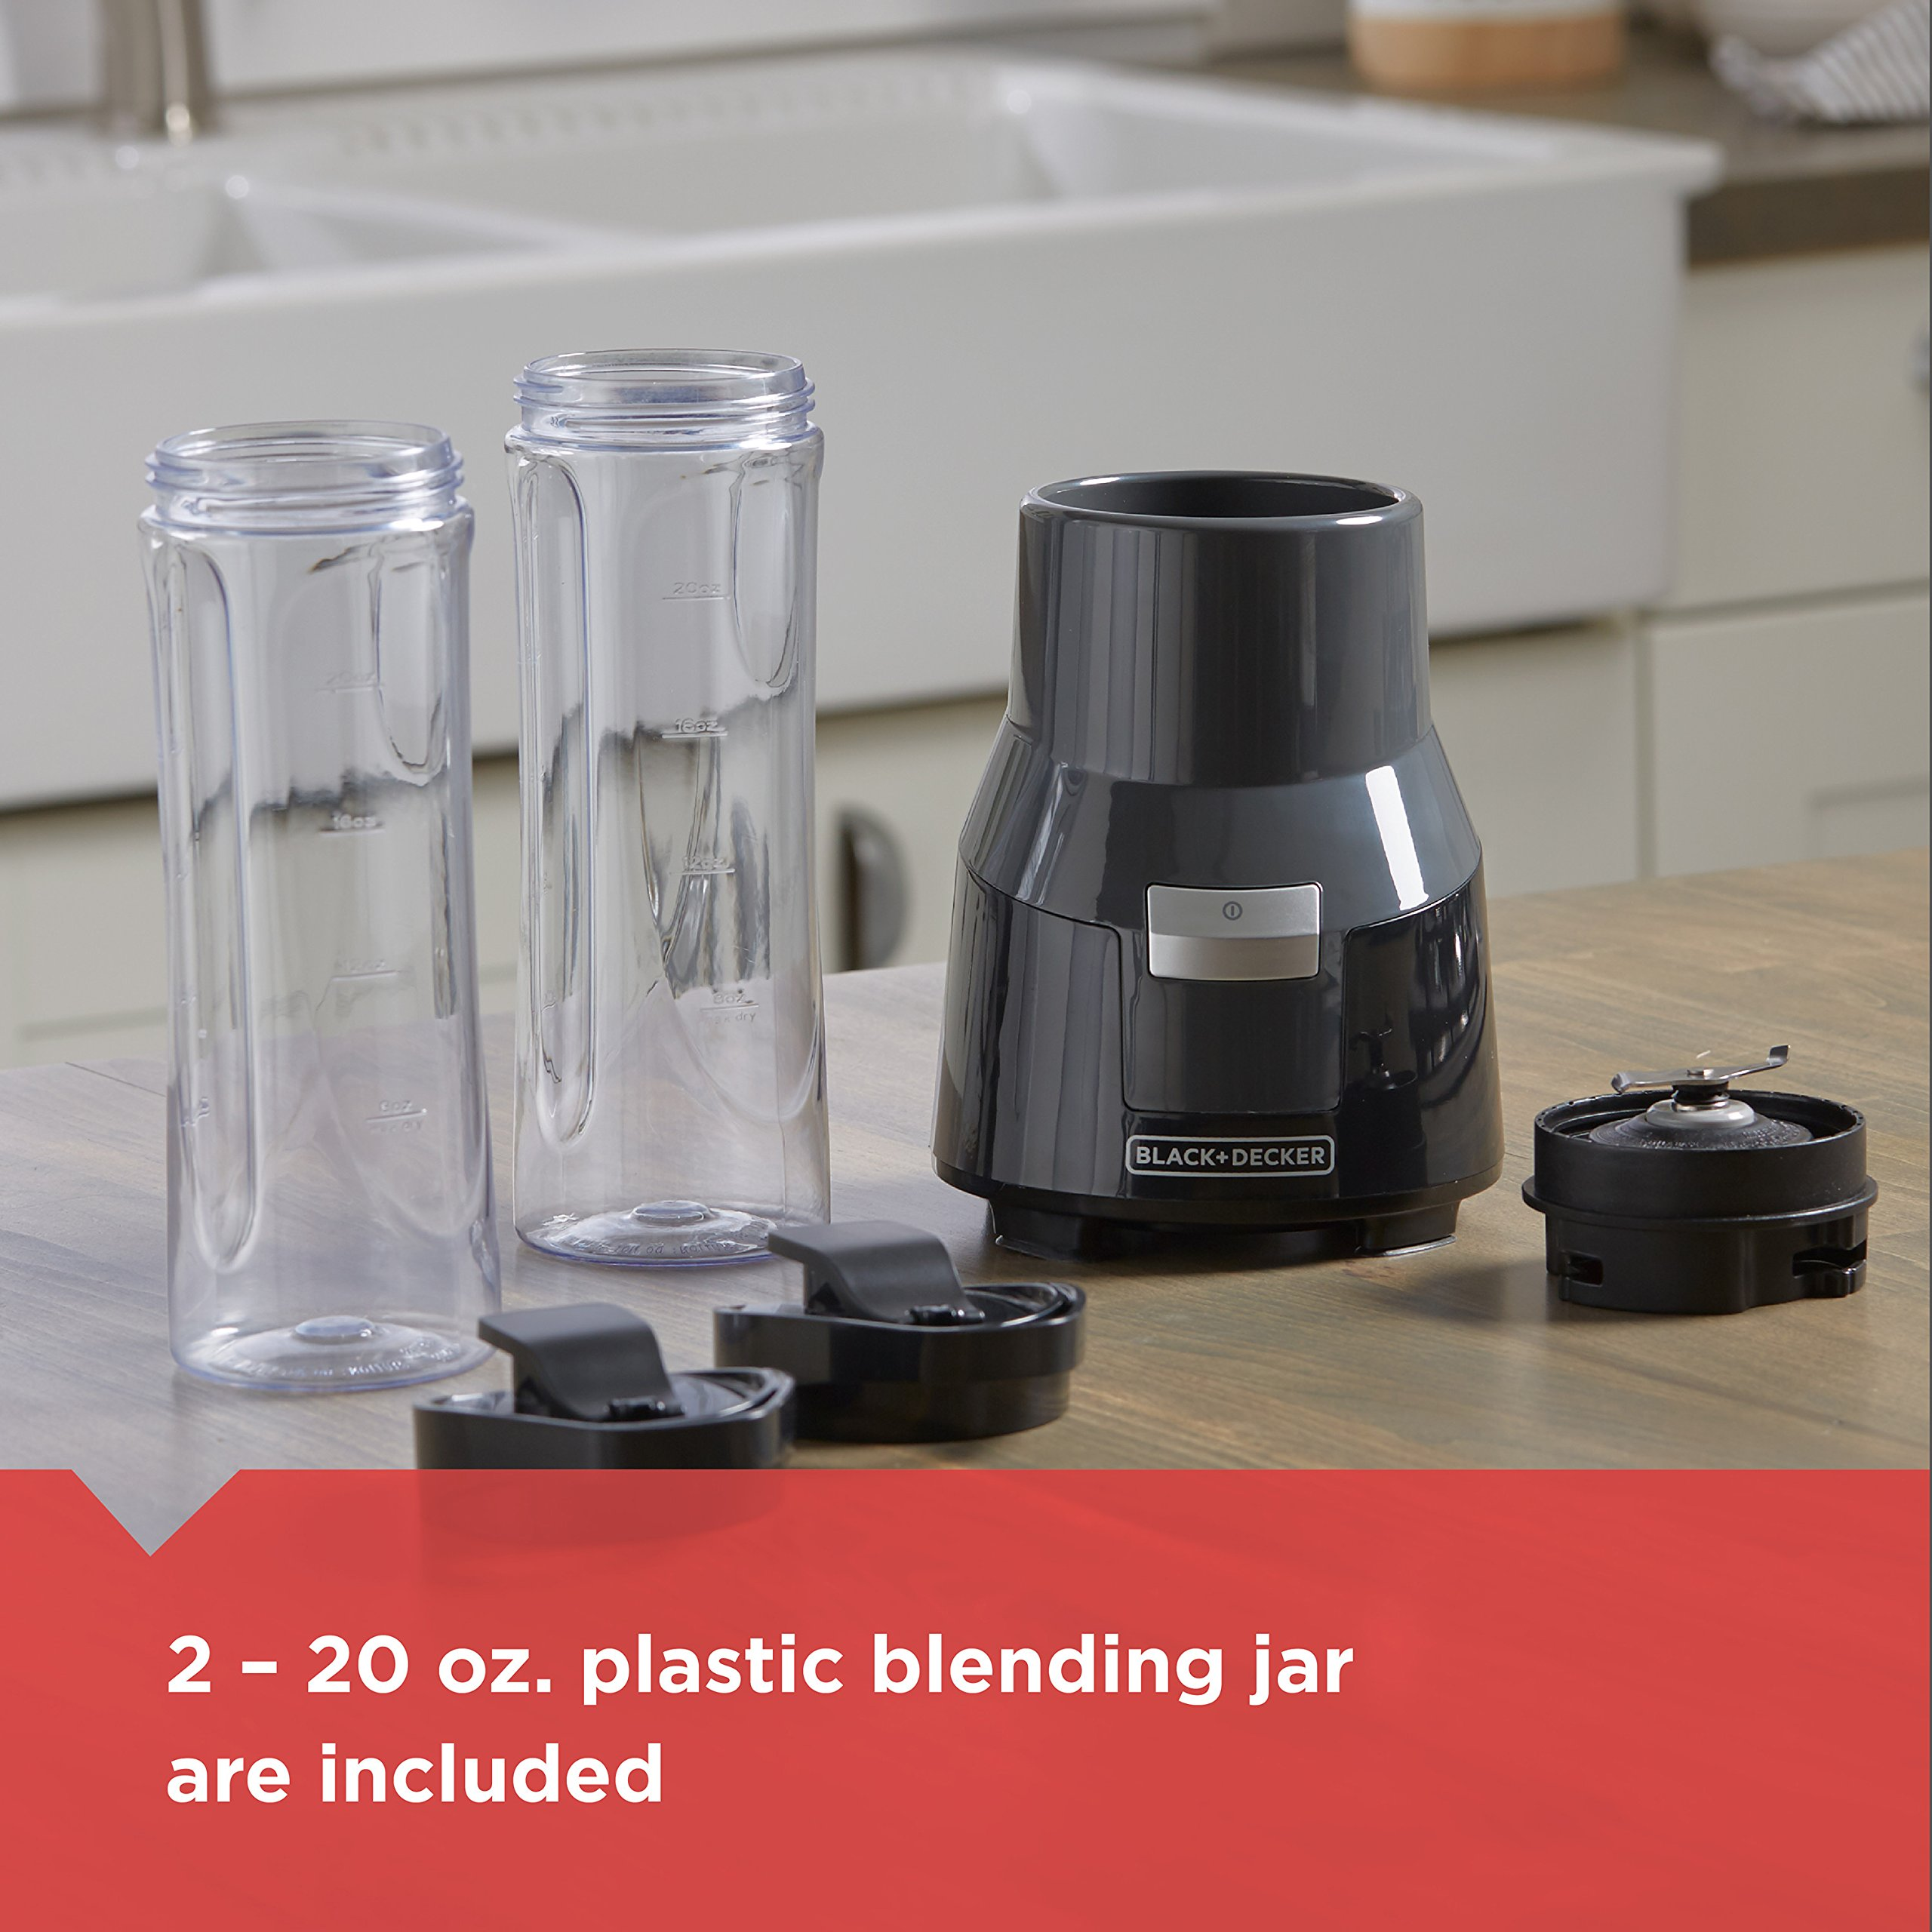 BLACK+DECKER FusionBlade Personal Blender with Two 20oz Personal Blending Jars, Gray, PB1002G by BLACK+DECKER (Image #4)